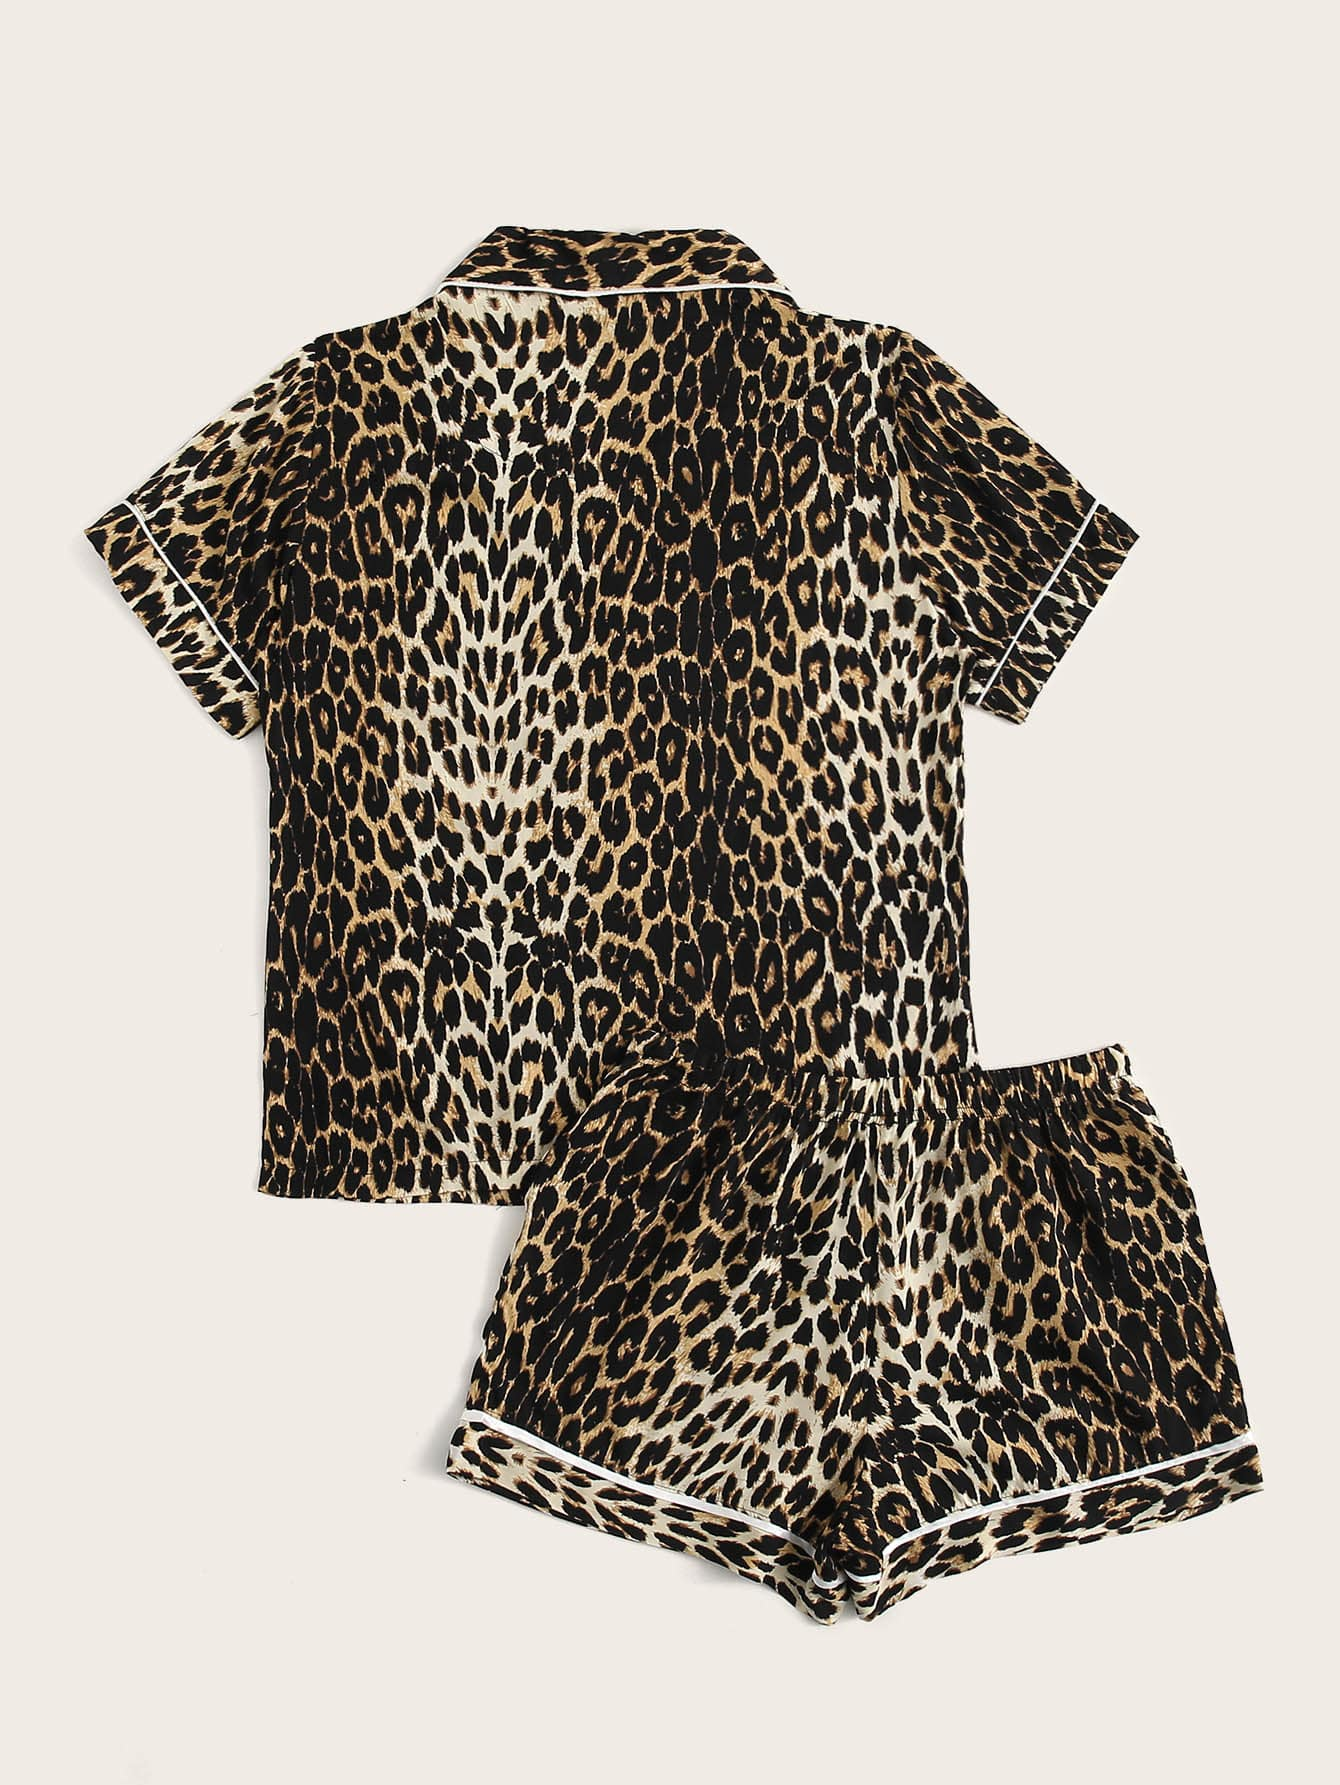 Leopard Print Drawstring Waist PJ Set - FLJ CORPORATIONS